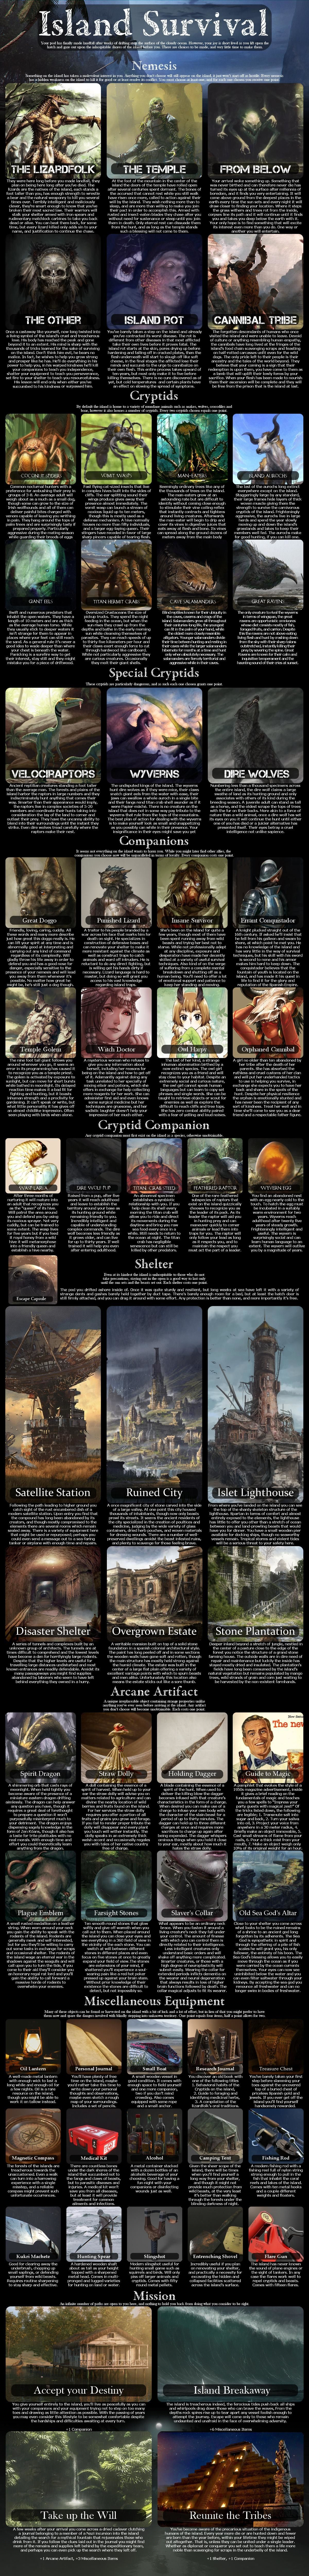 Island Survival CYOA | Worldbuilding in 2019 | Cyoa, Create